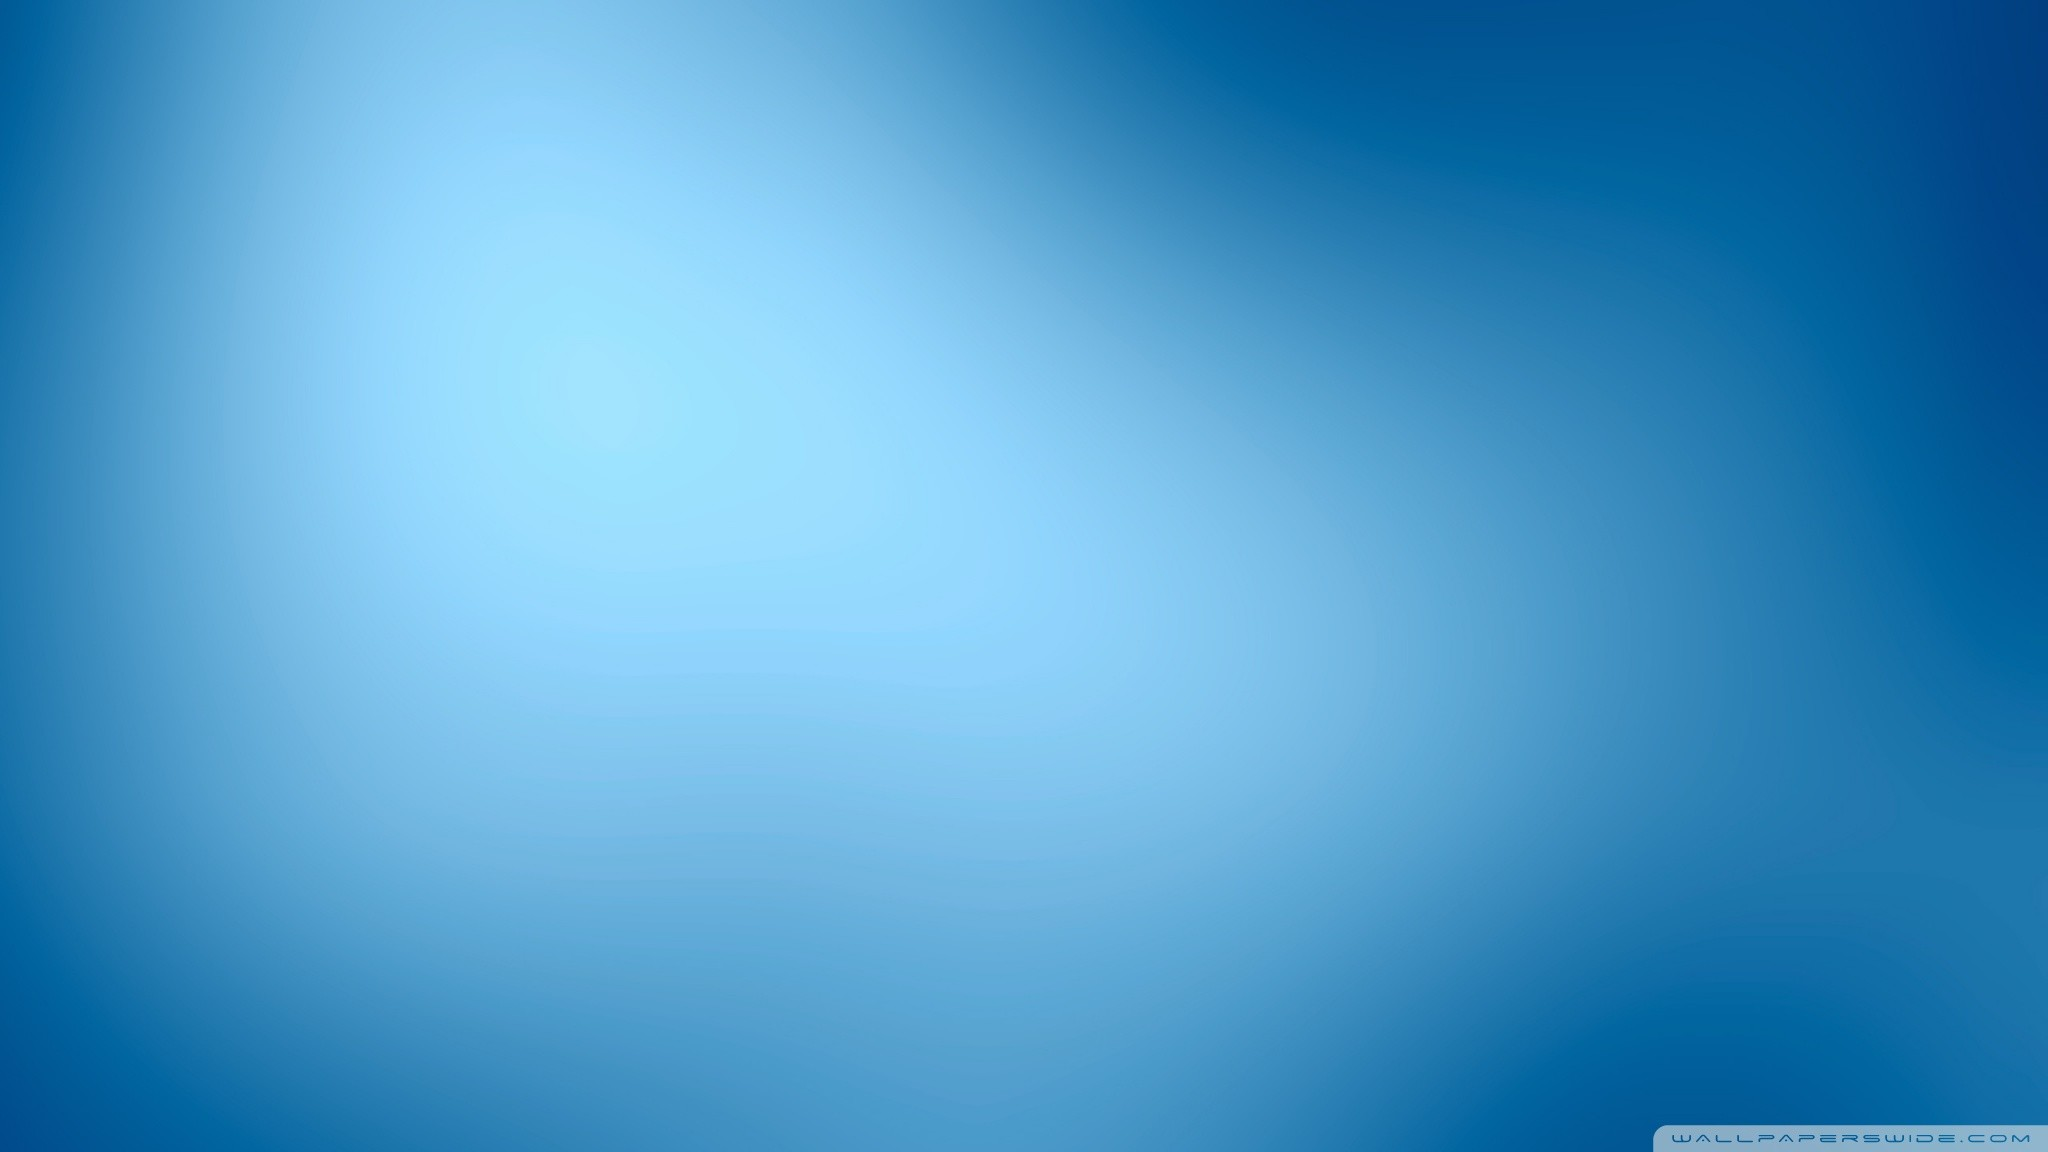 Blue Background Abstract-blue-backgrounds-12.